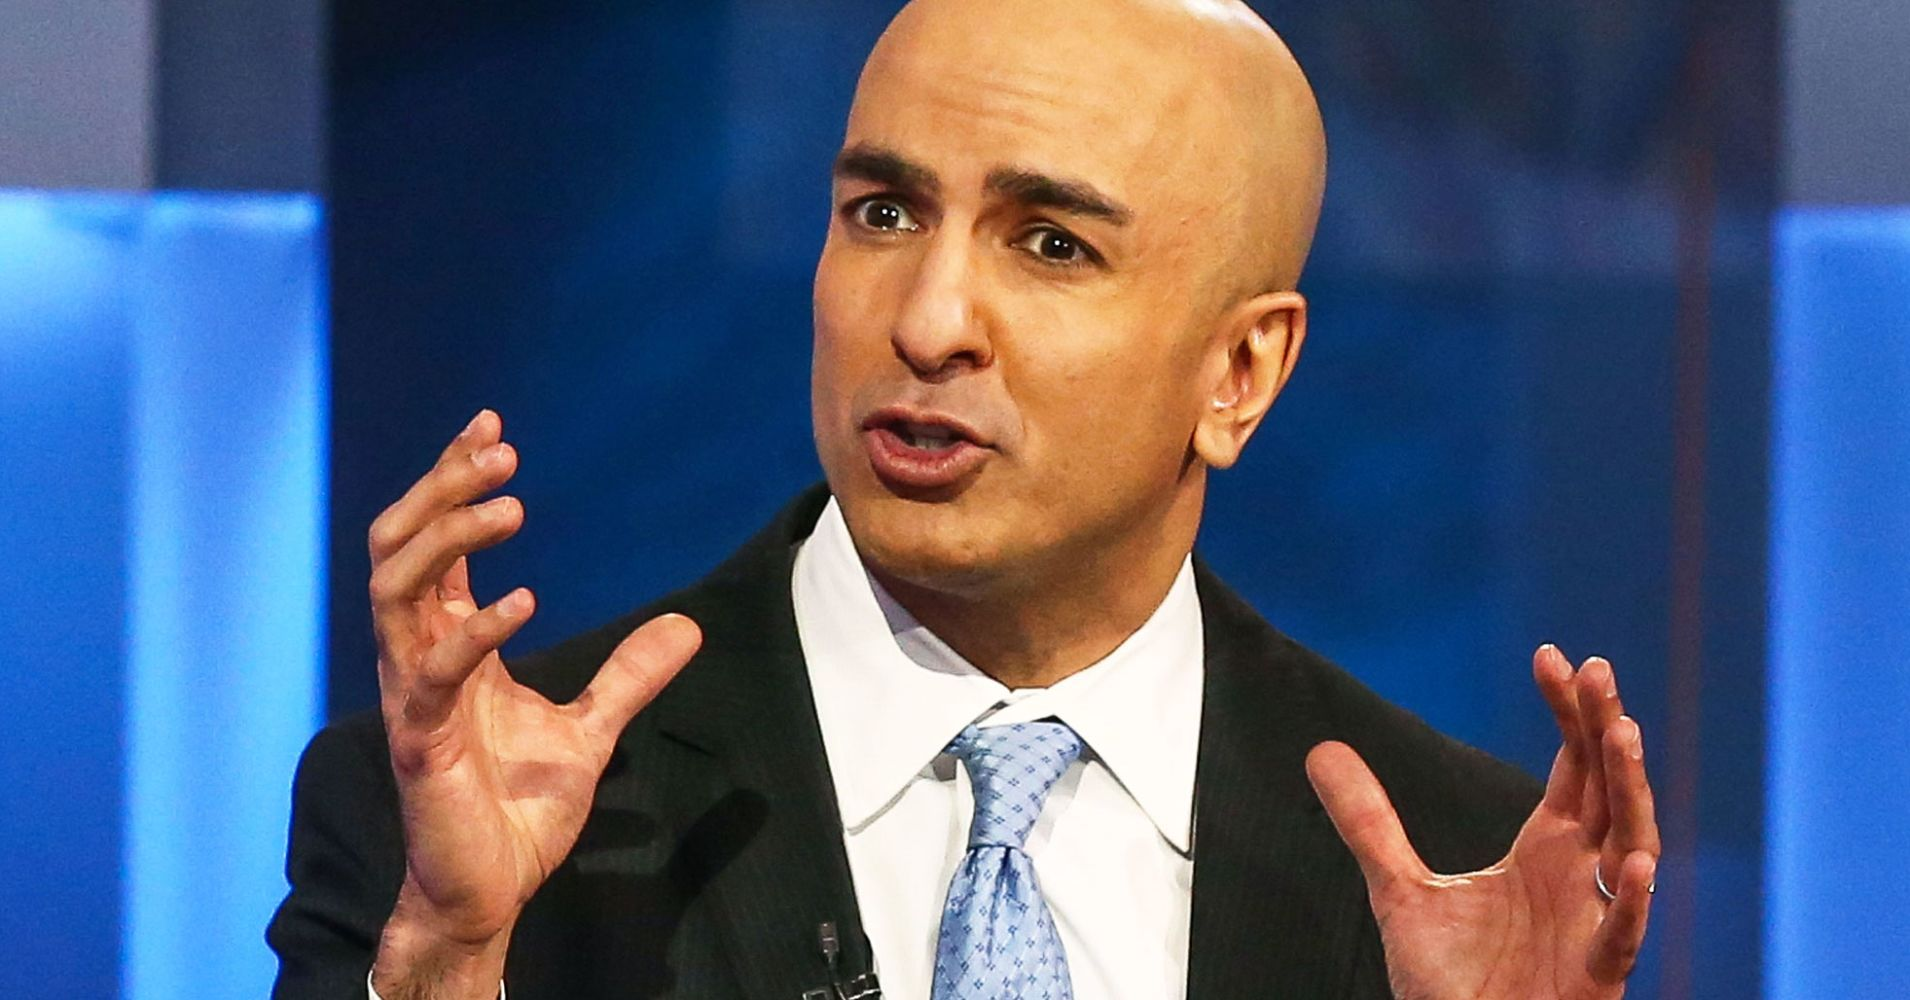 Fed's Kashkari says rates should not go up when job creation is strong and inflation is tame